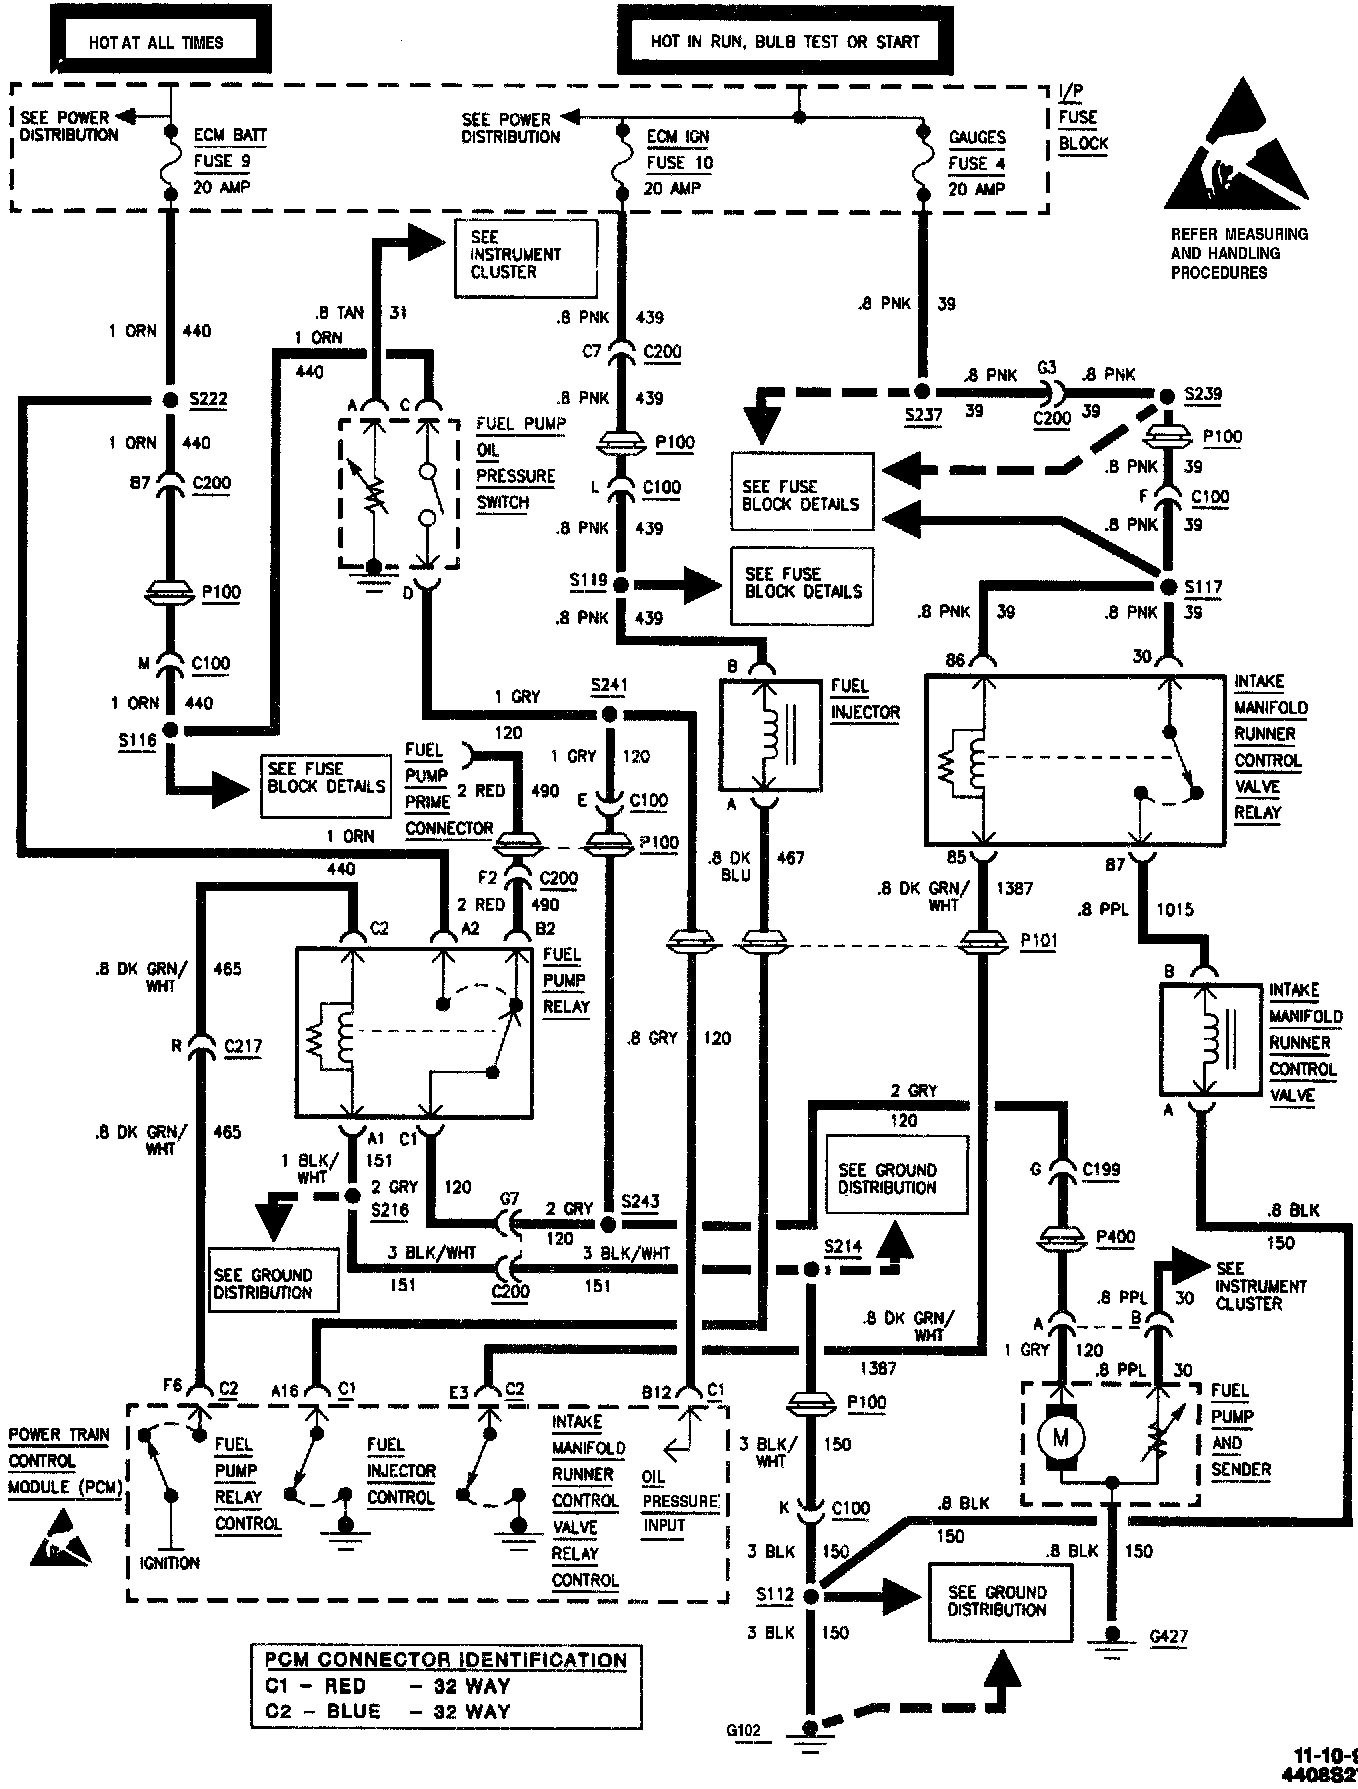 hight resolution of 1995 gmc jimmy wiring diagram schema wiring diagram 1995 gmc jimmy wiring